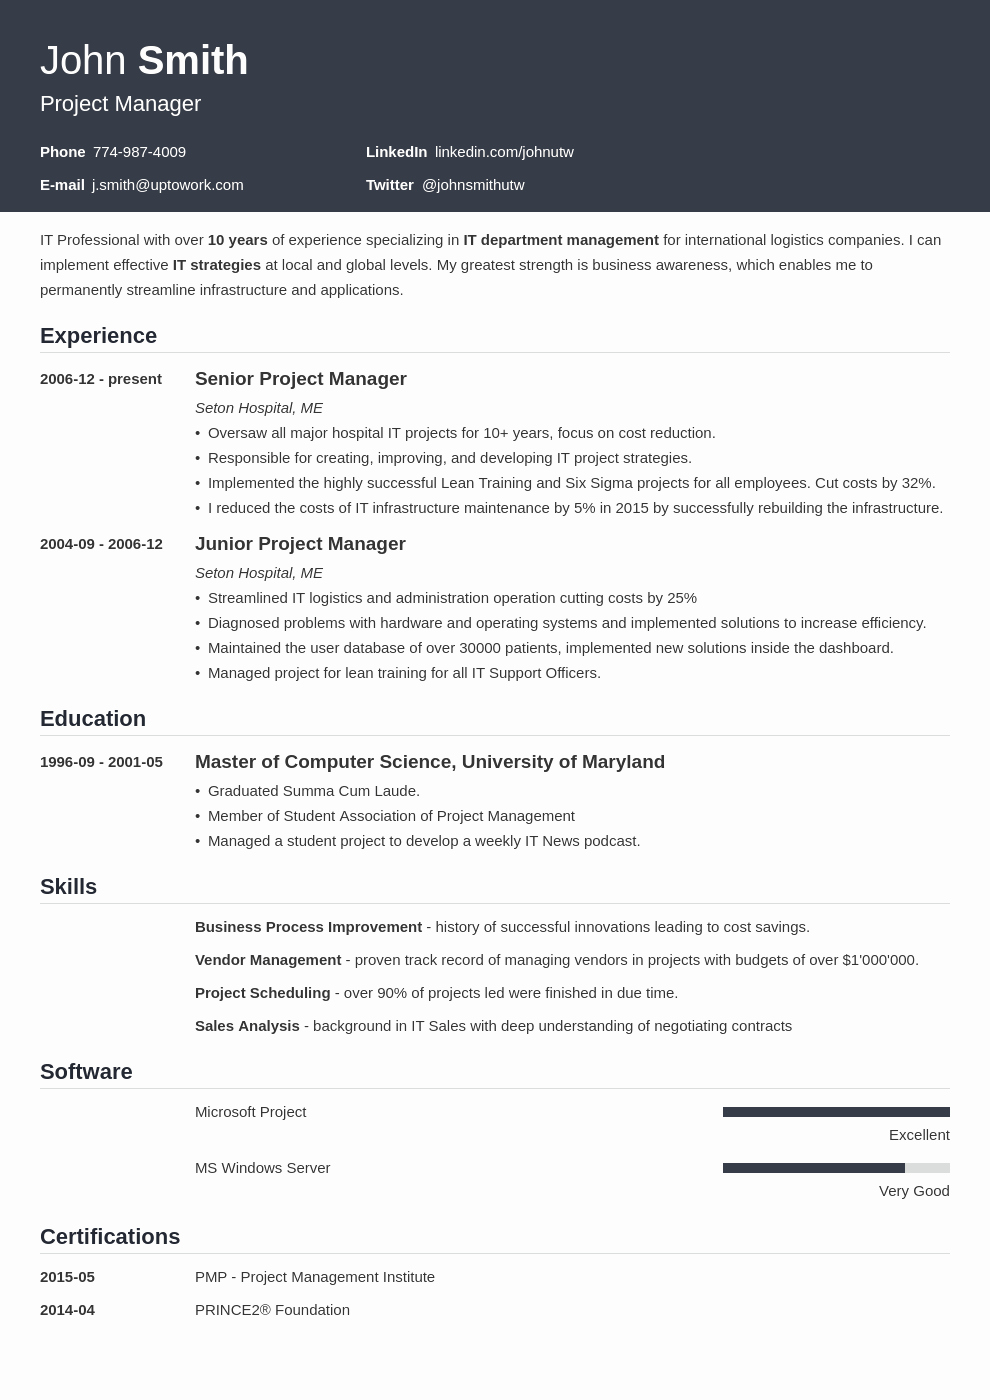 Resume Template with Photo Unique 20 Resume Templates [download] Create Your Resume In 5